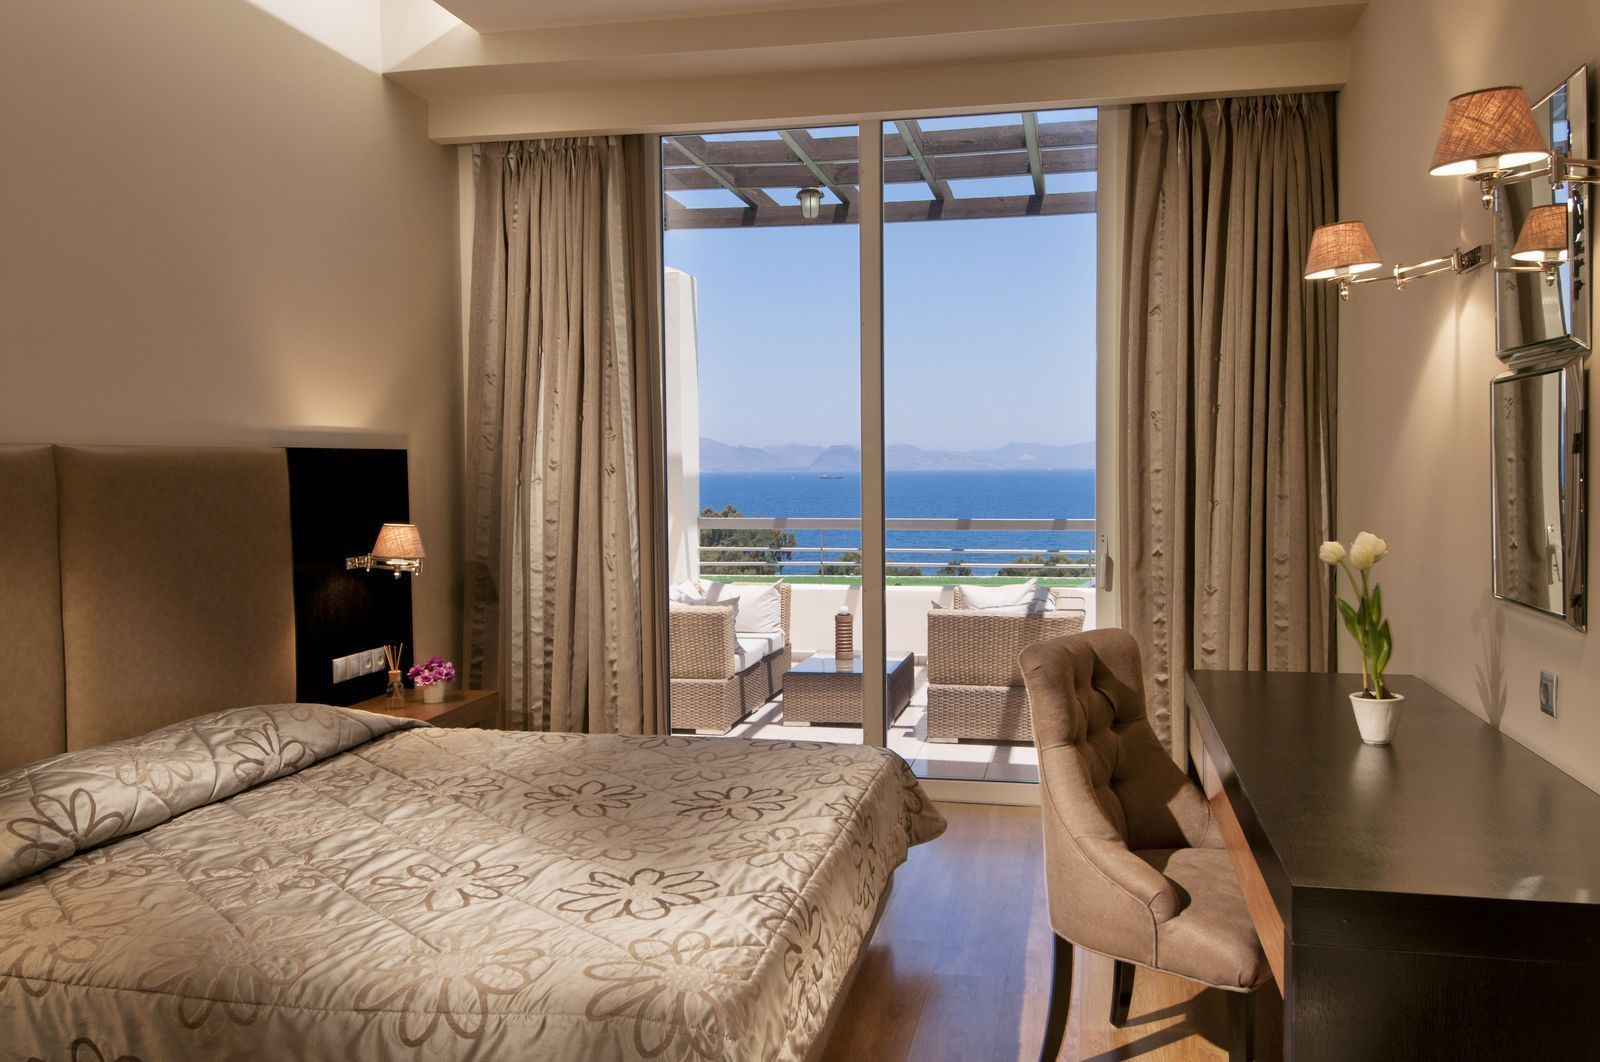 Presidential Suite at Kipriotis Hotels in Kos.jpeg